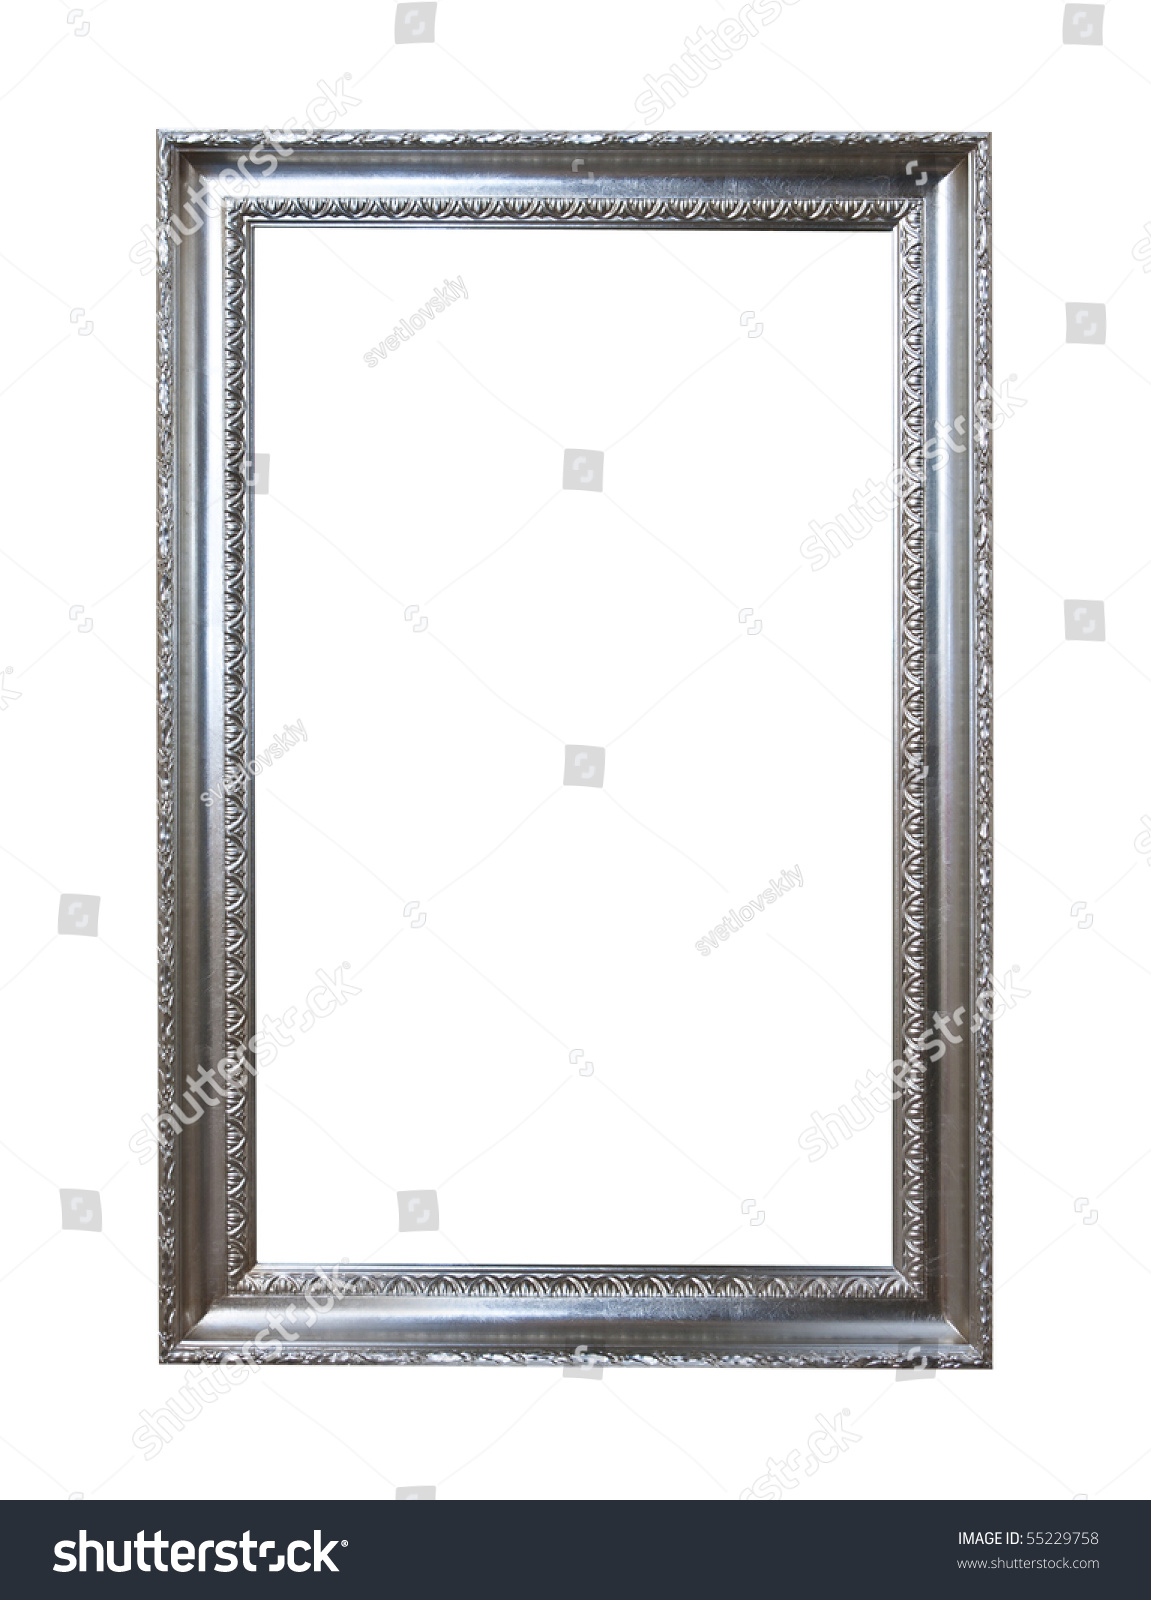 Baroque Picture Frames Put Your Own Stock Photo (Royalty Free ...